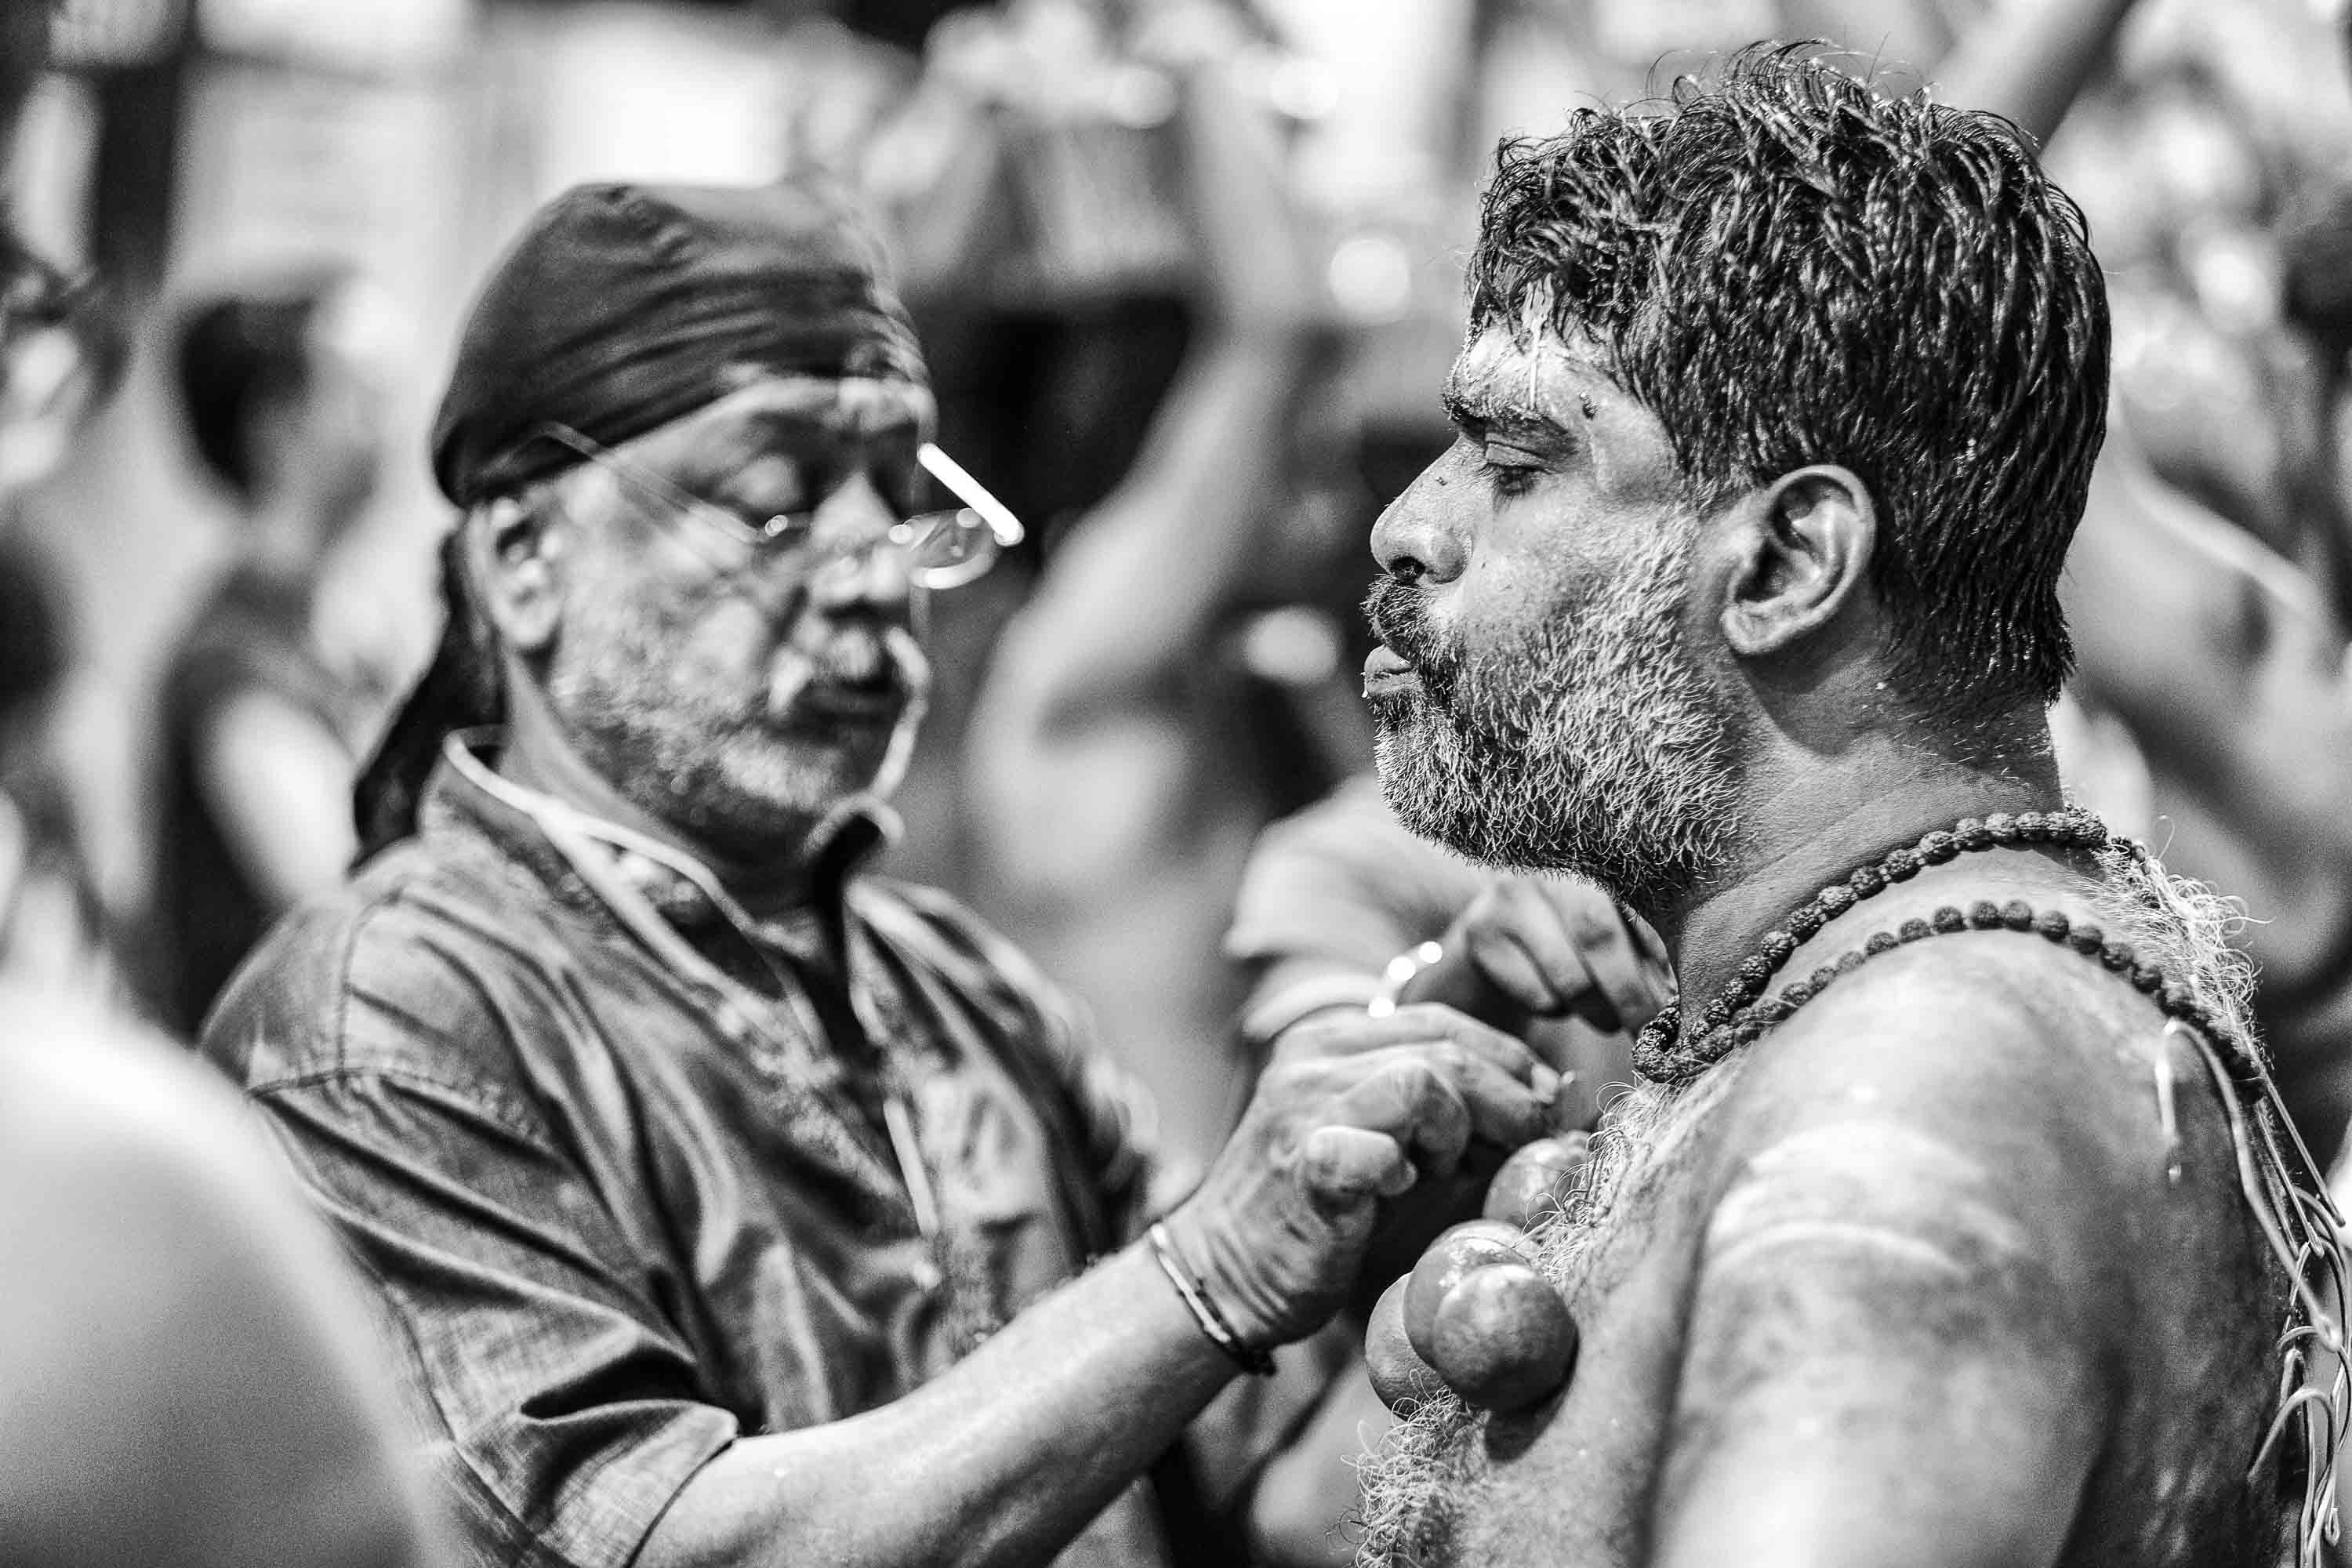 ritual man indian elmon piercing Little India Thaipusam Festival hindu Singapore photography jose jeuland documentary event